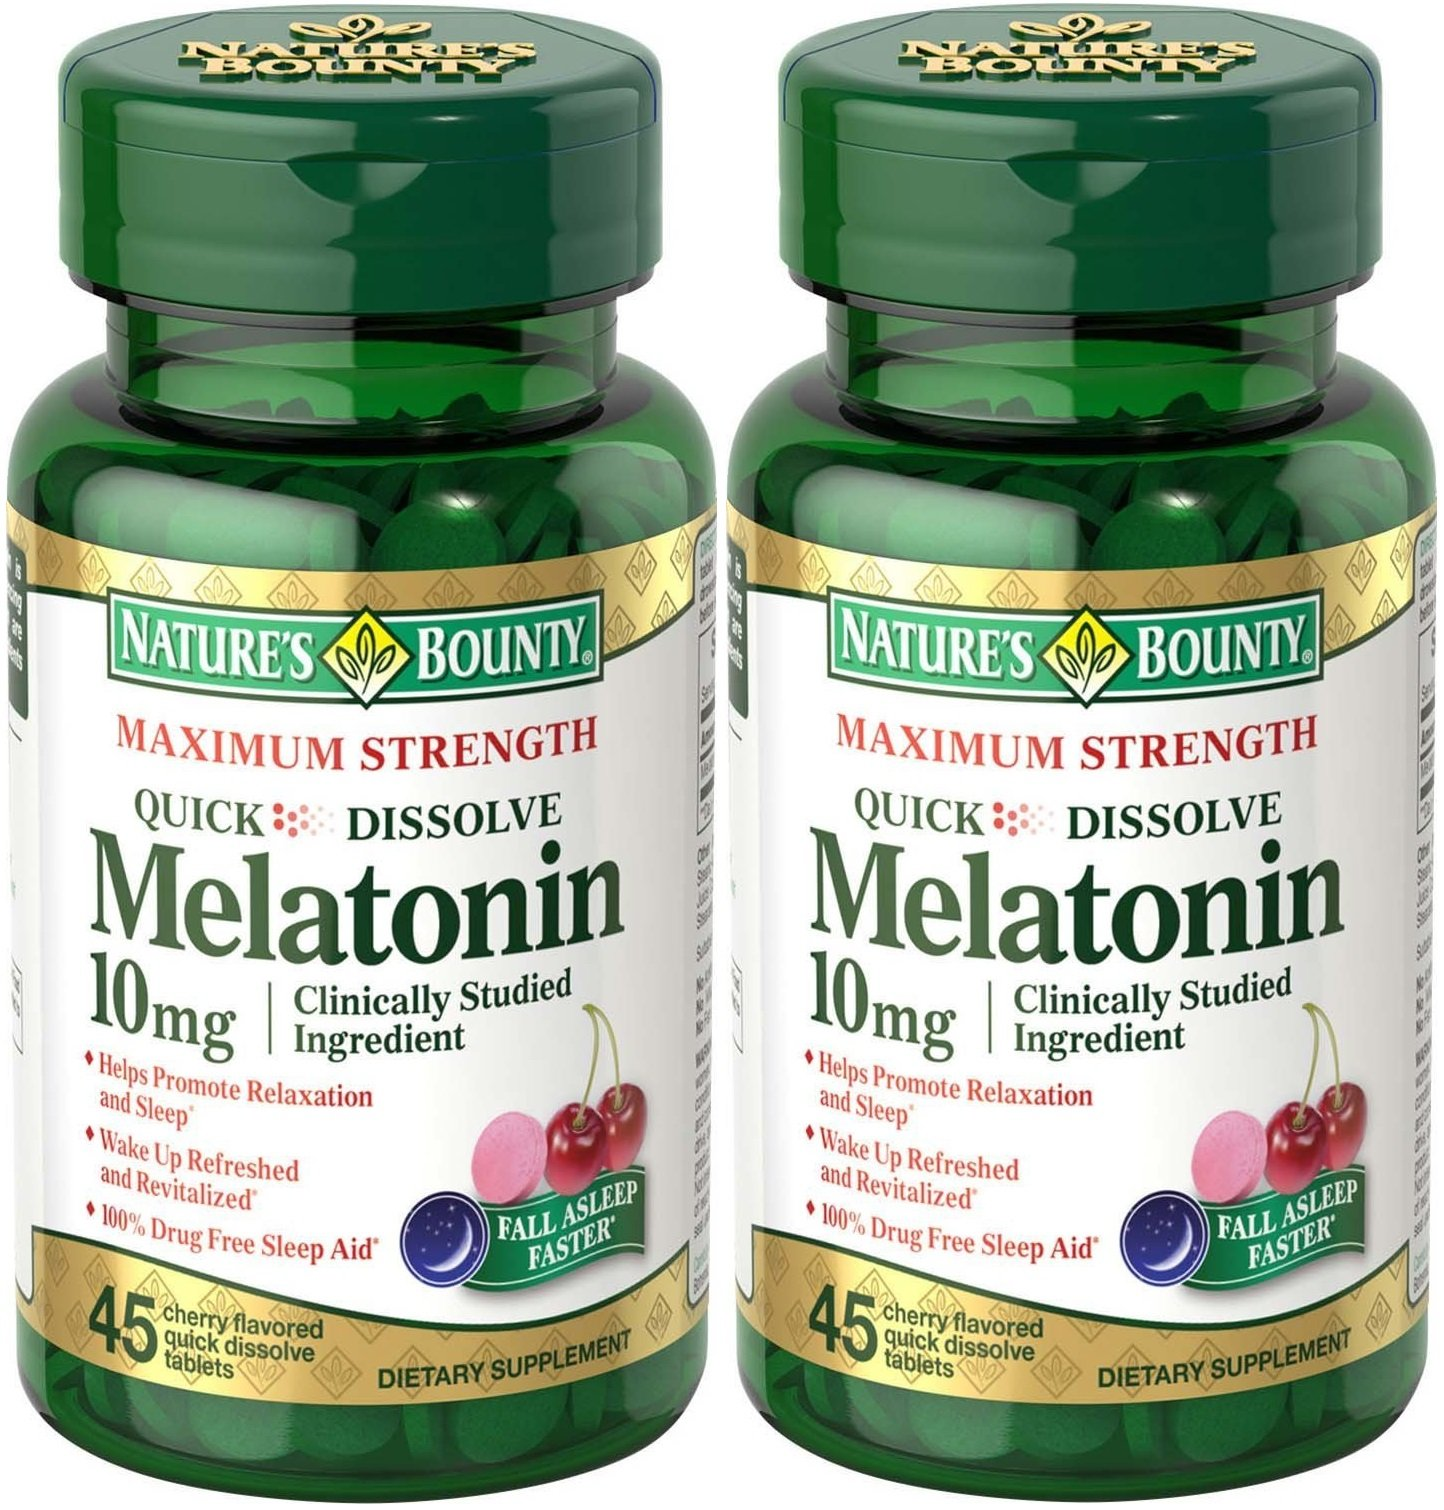 Natures Bounty Melatonin Quick Dissolve Tablet, 10 mg, 90 Tablets (2 X 45